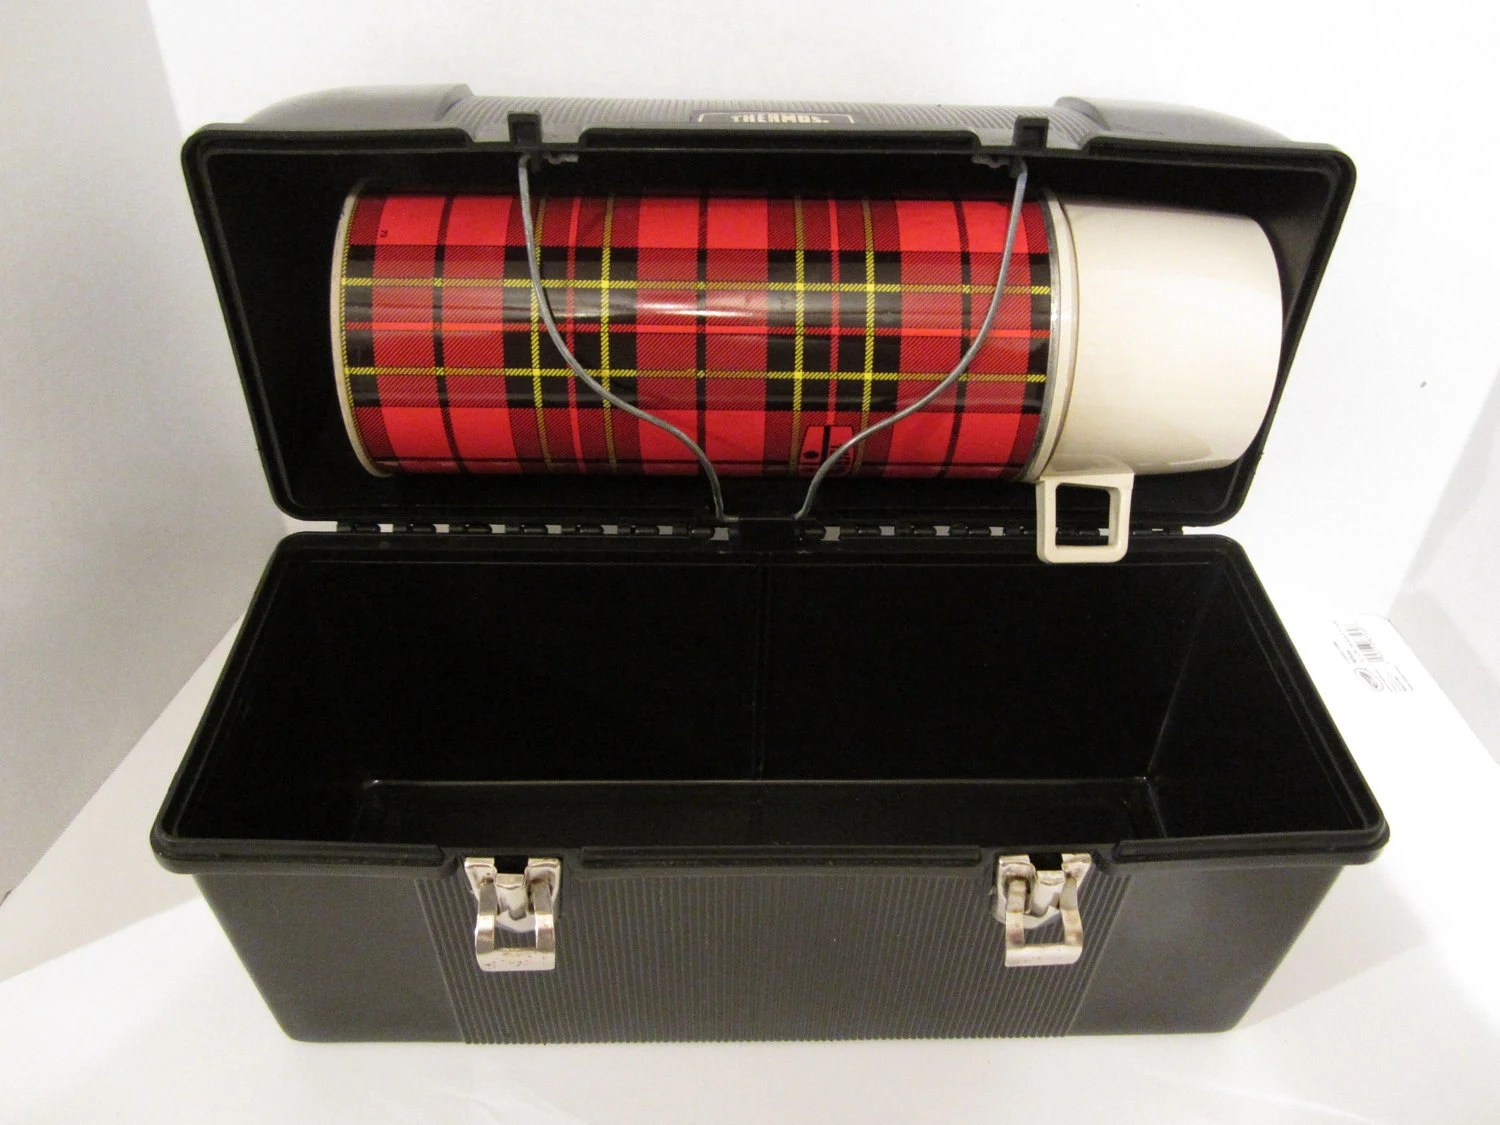 Vintage Thermos Lunch Box PRICE REDUCED